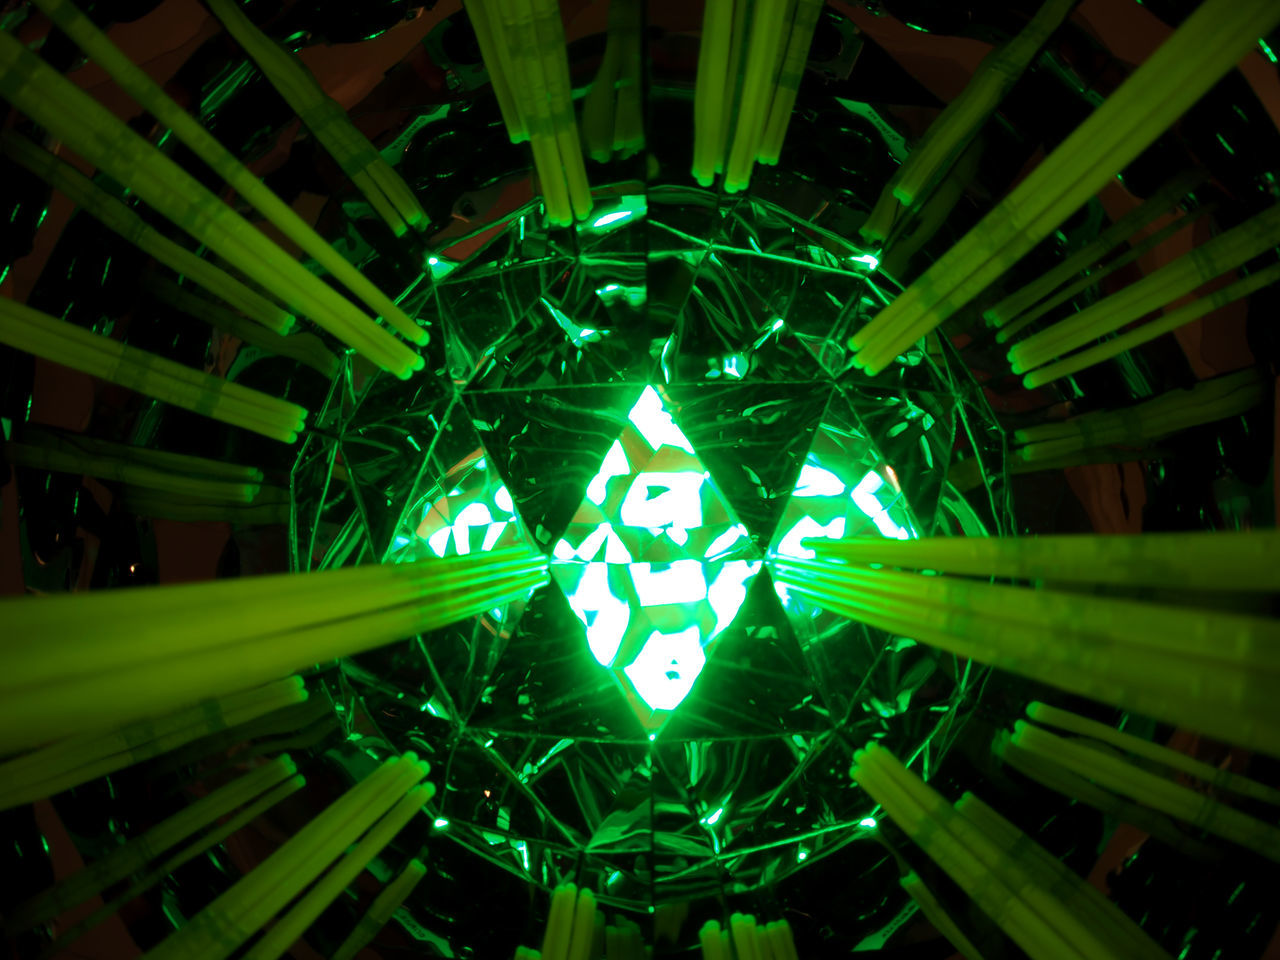 illuminated, green color, lighting equipment, no people, night, pattern, glowing, shape, indoors, close-up, light, light - natural phenomenon, electricity, decoration, low angle view, celebration, design, star shape, electric light, directly below, ceiling